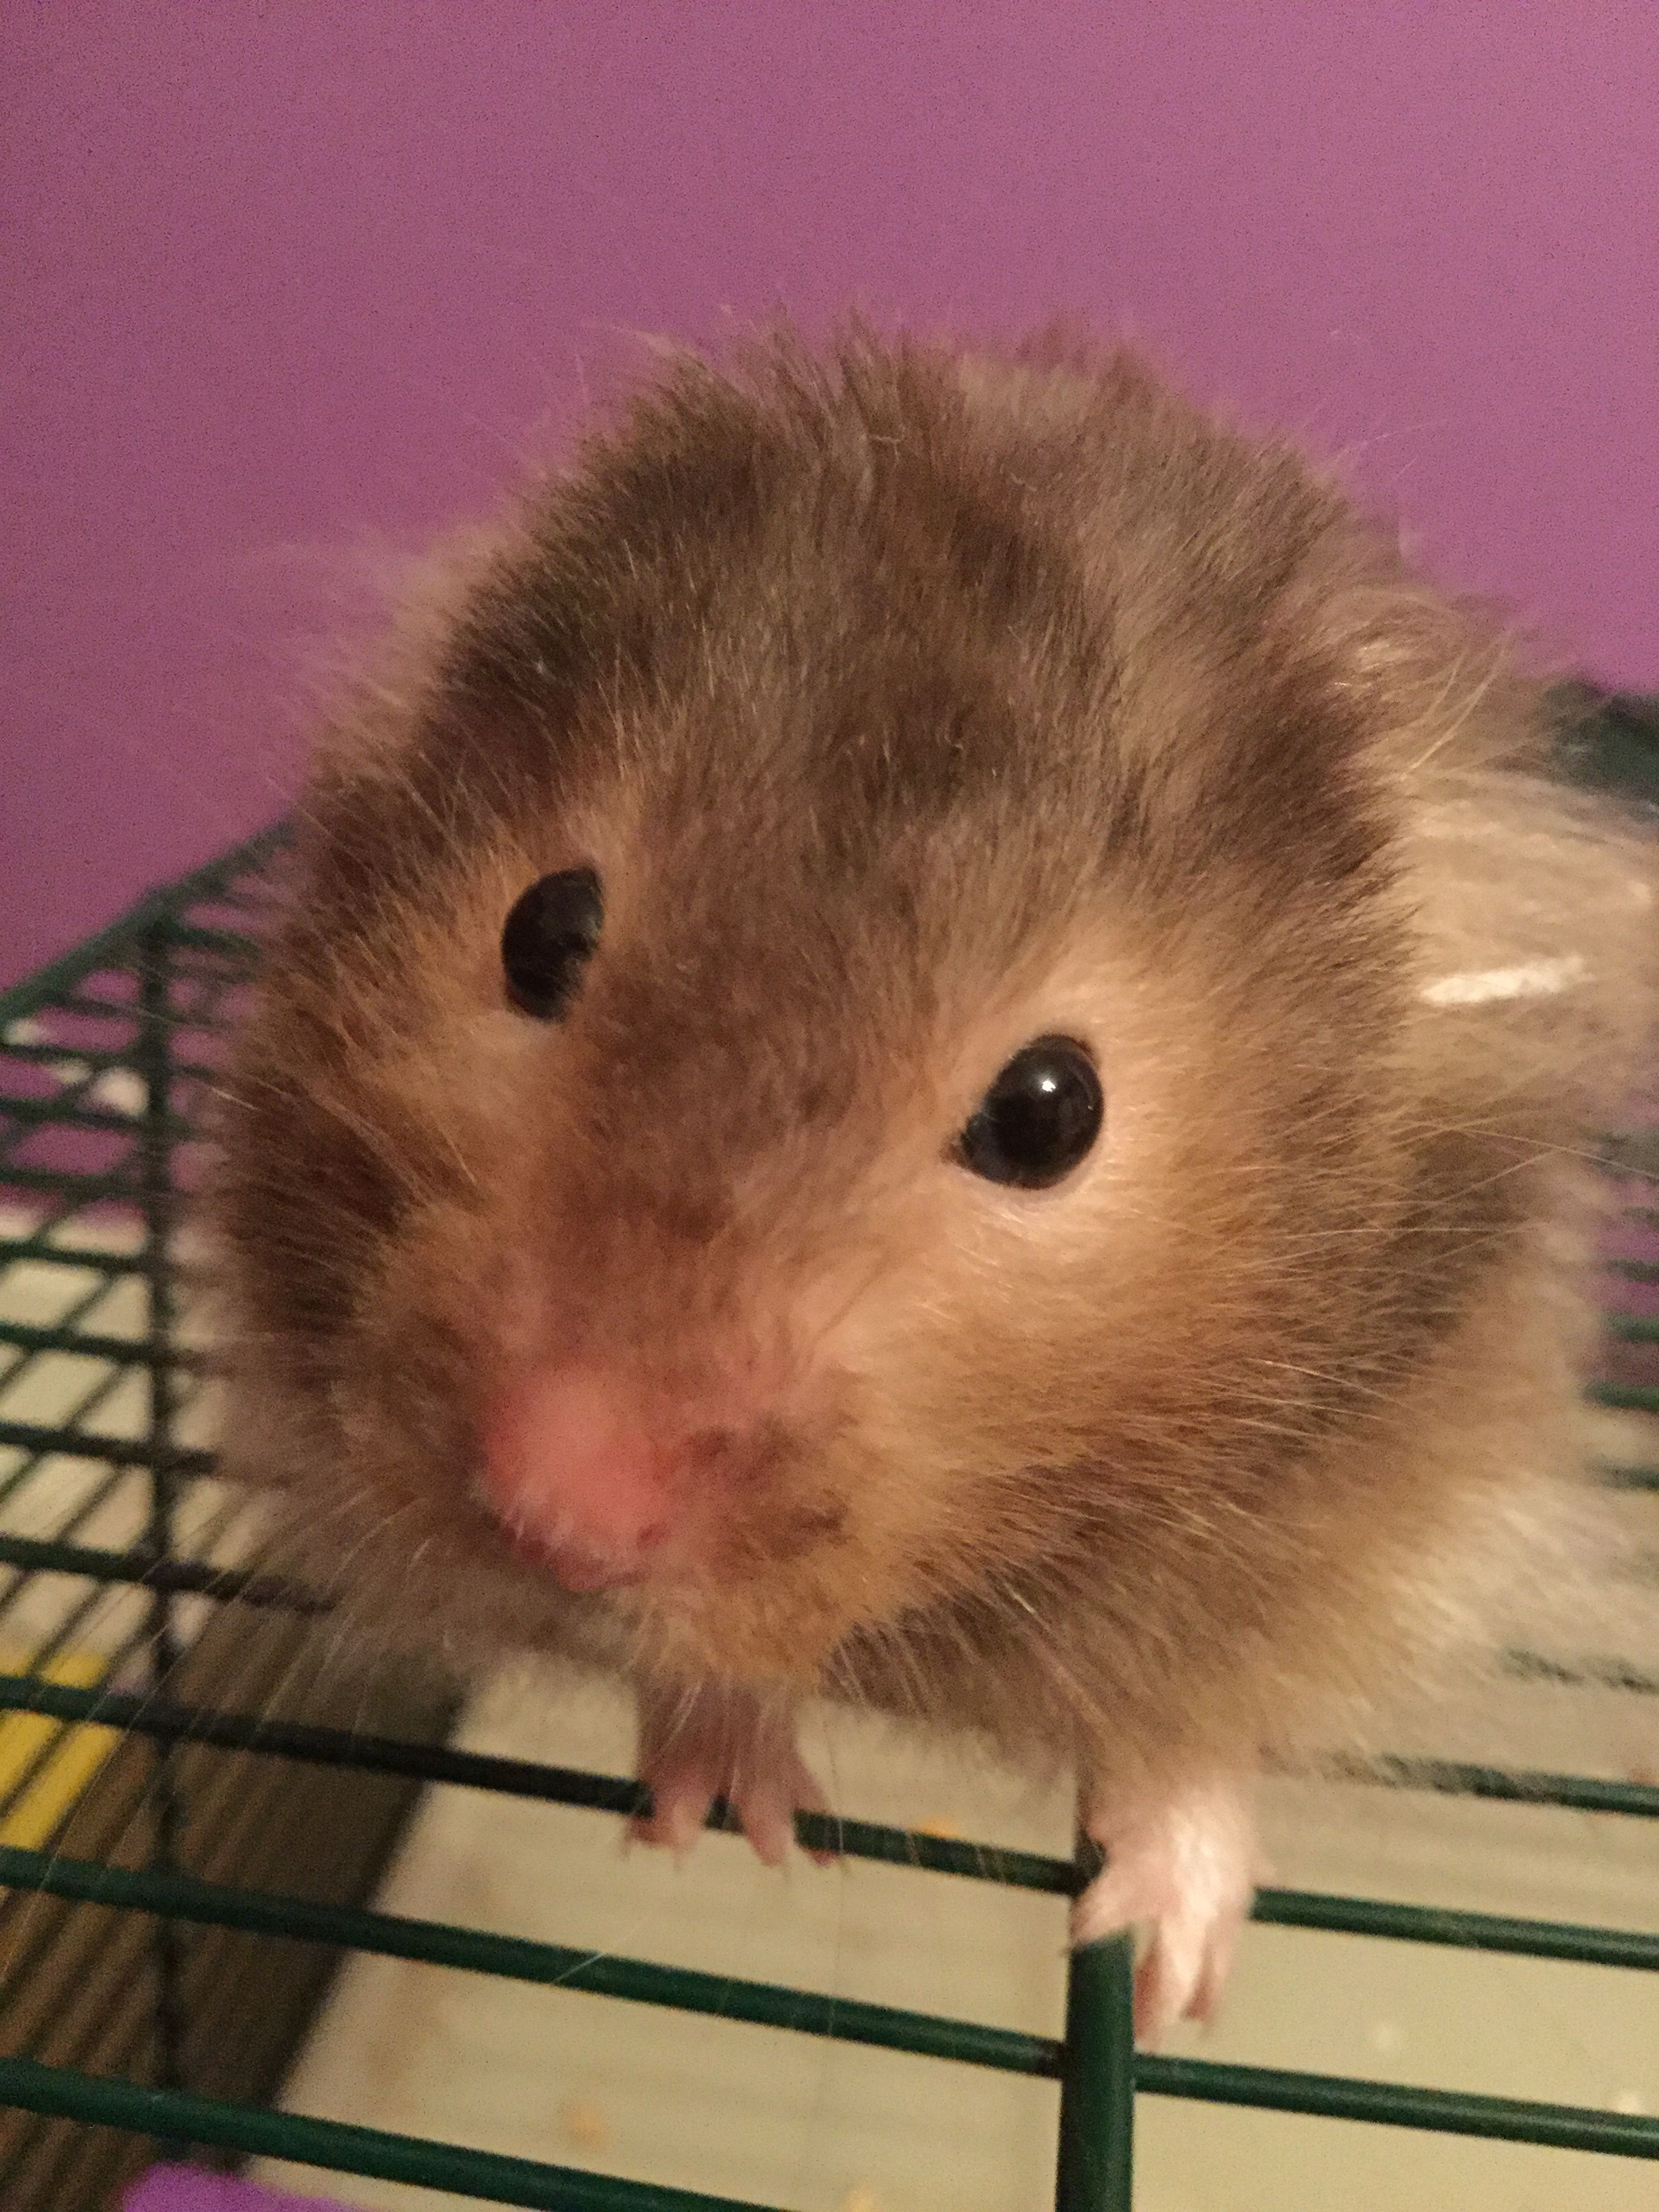 Pin By Laura On Hamsters Hamsters And More Hamsters Hamster Animals